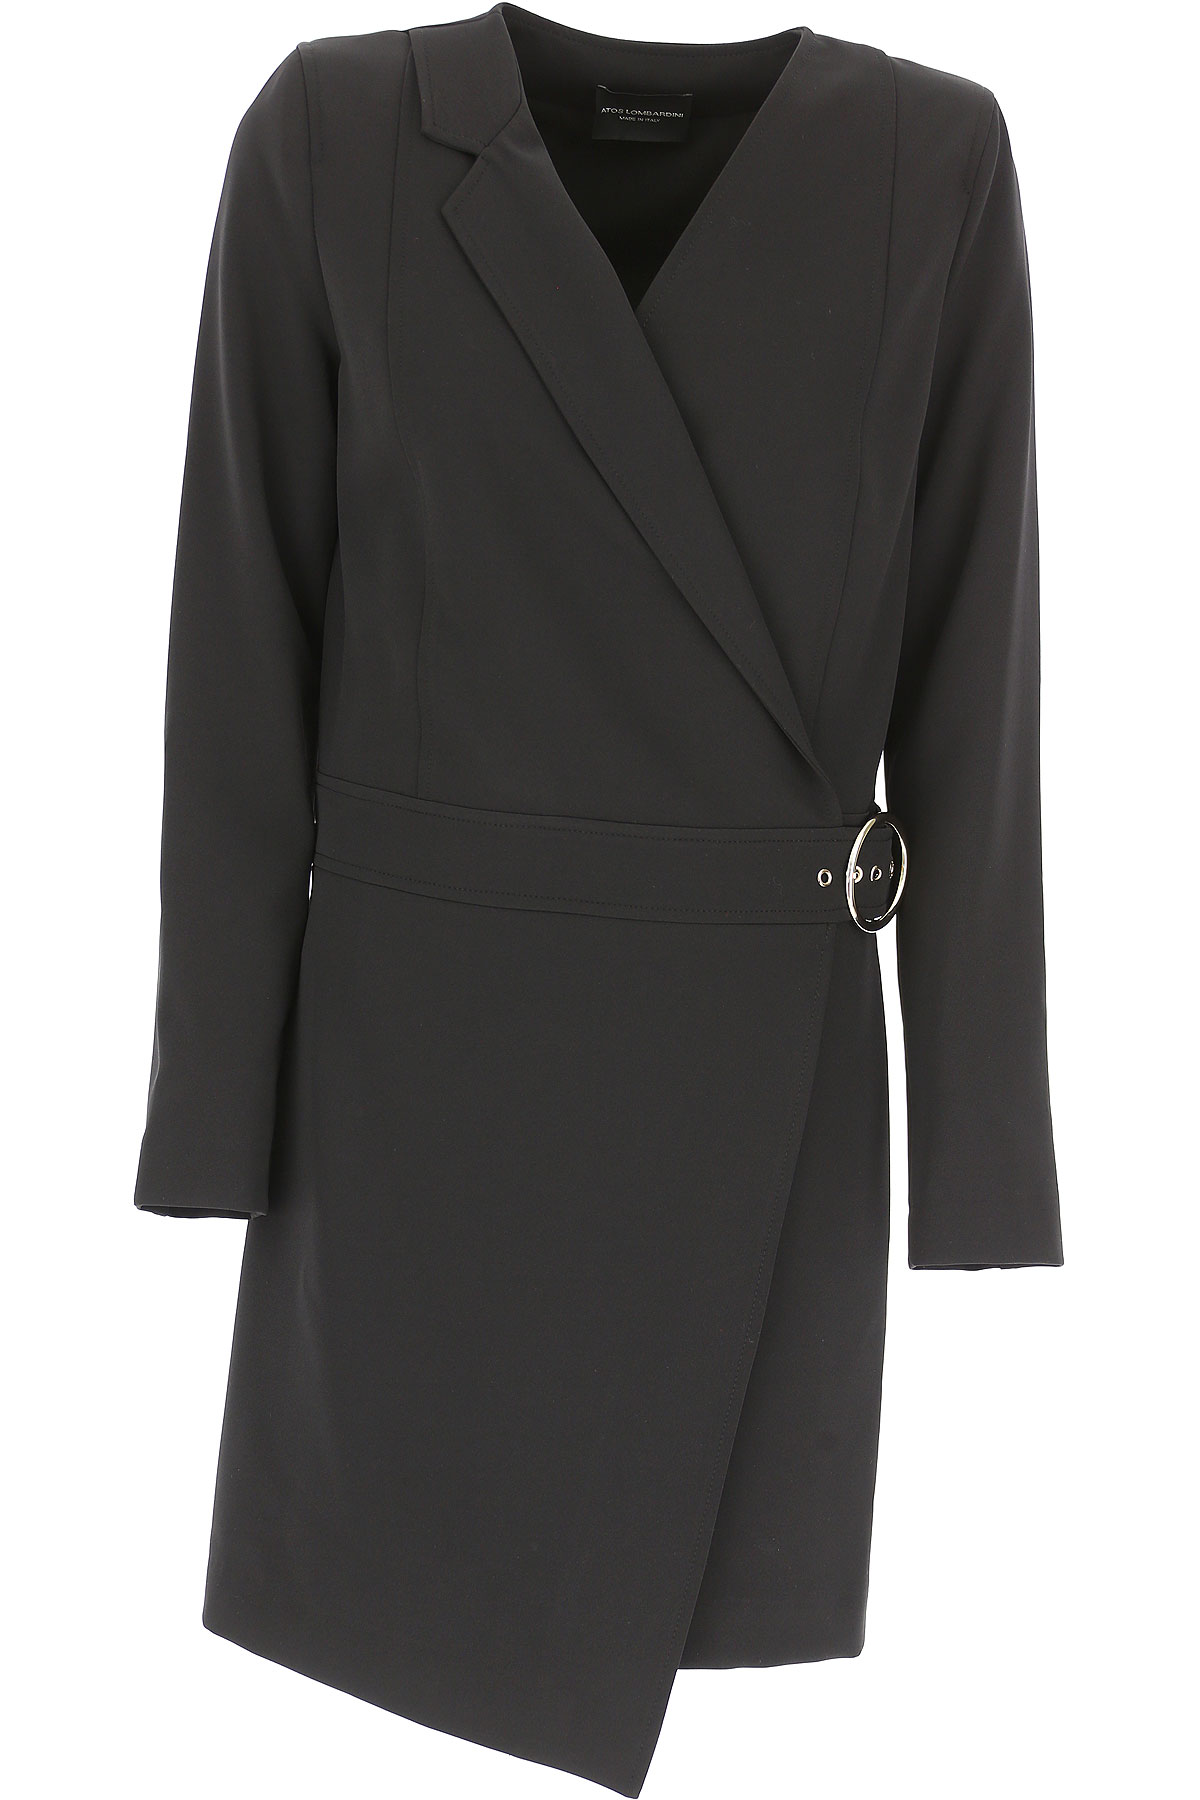 Image of Atos Lombardini Dress for Women, Evening Cocktail Party, Bla, polyester, 2017, 10 6 8